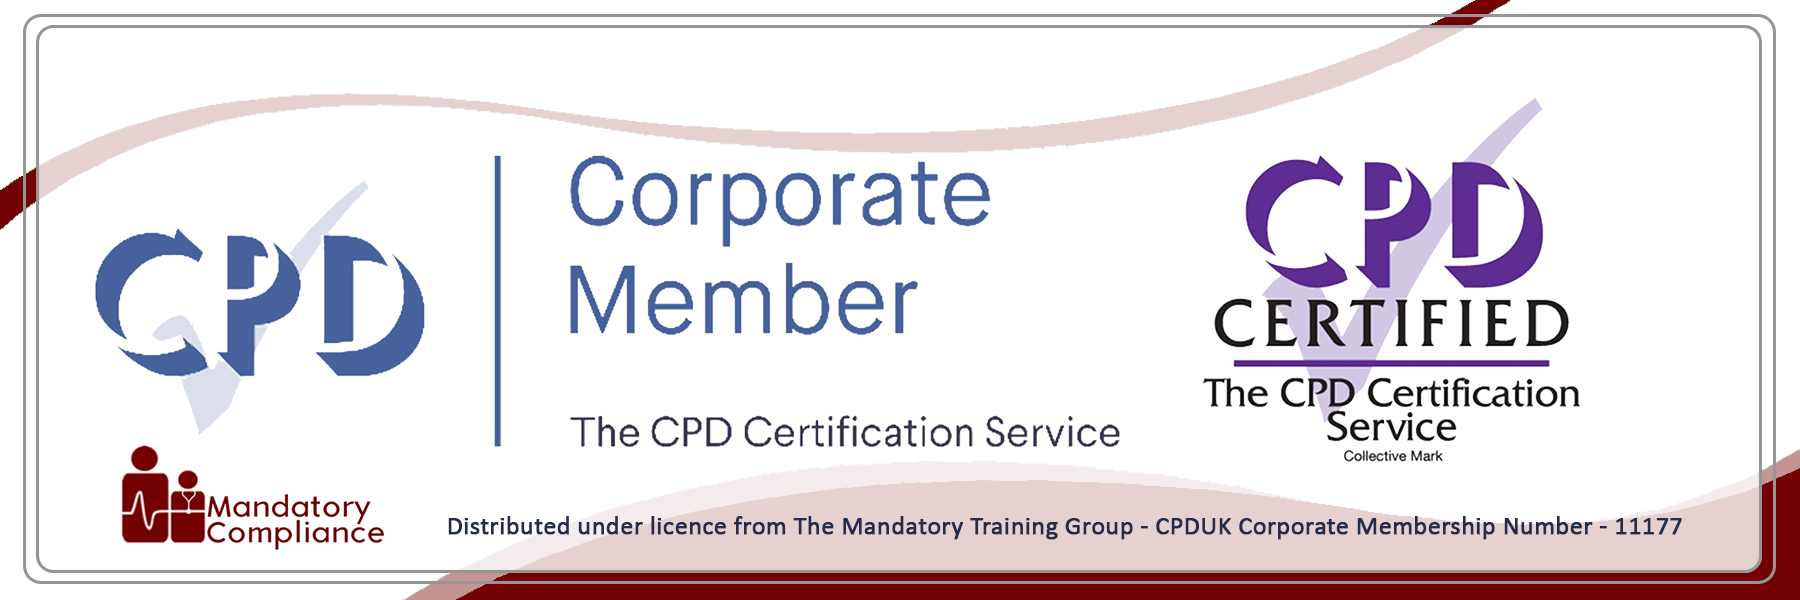 Basic Life Support – Train the Trainer Course + Trainer Pack - Online Learning Courses - E-Learning Courses - Mandatory Compliance UK -